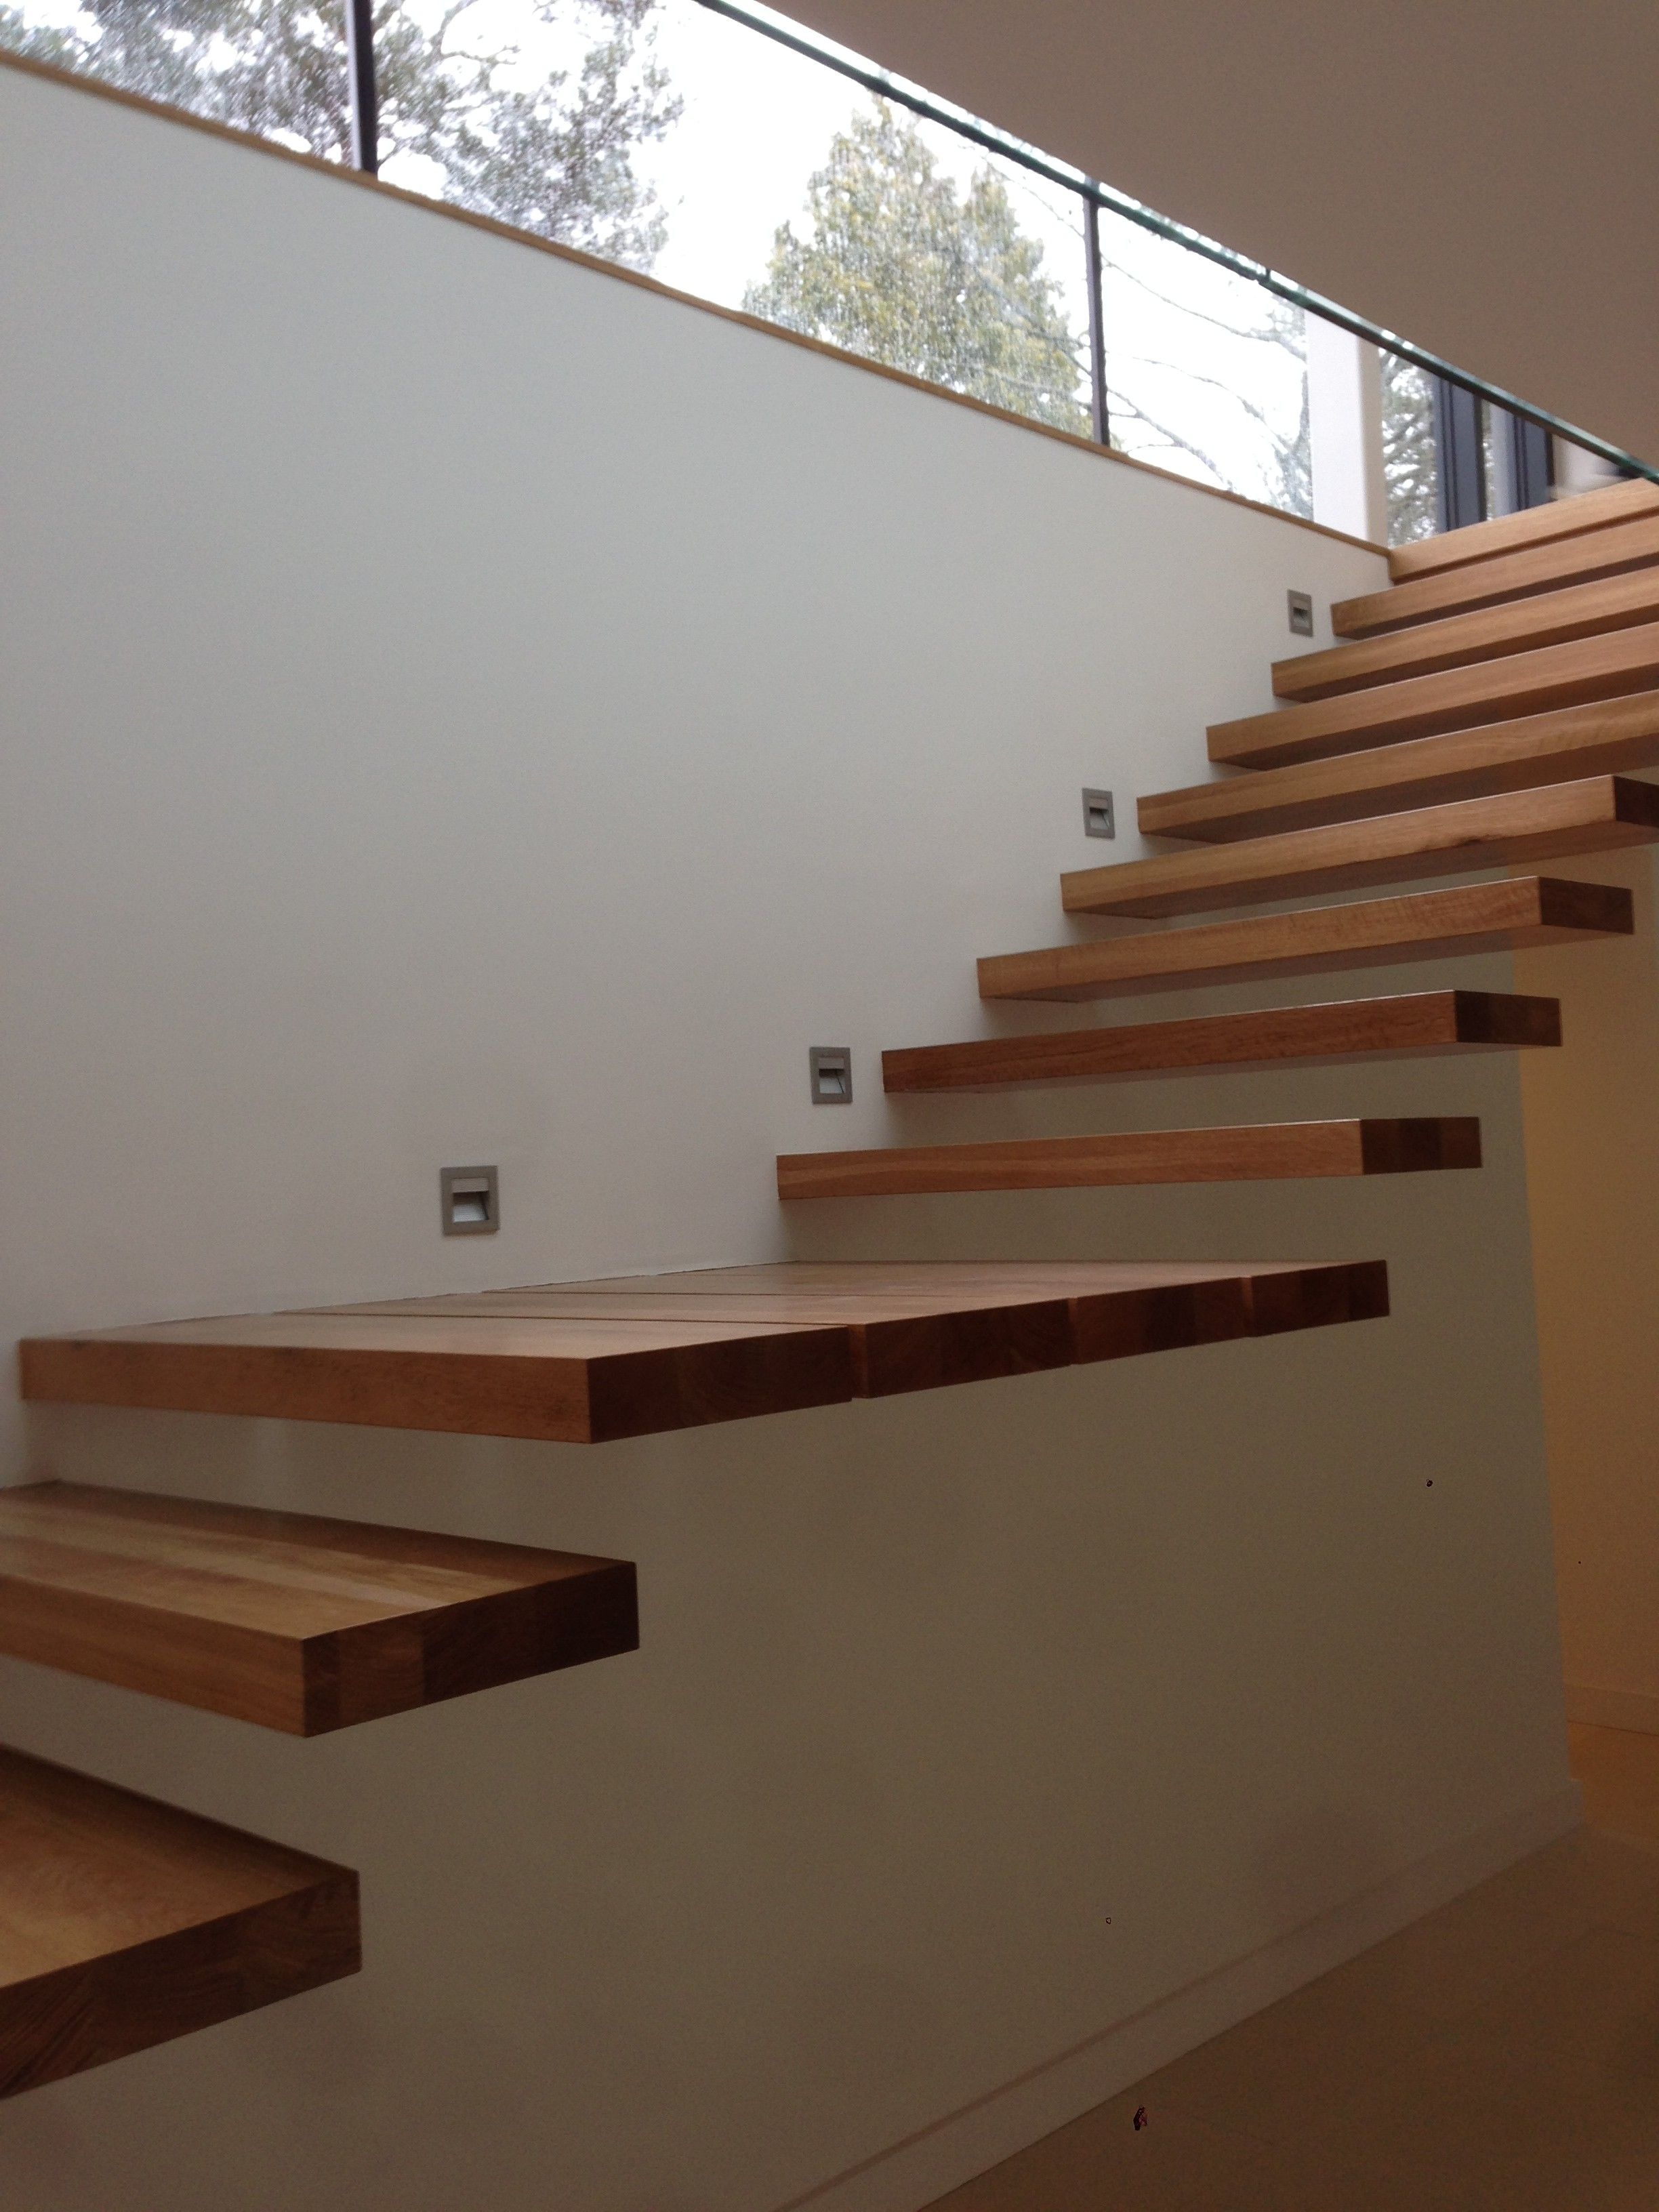 How To Build Floating Stairs Amazing Teak Wood Floating Stairs Attach On Wall Without